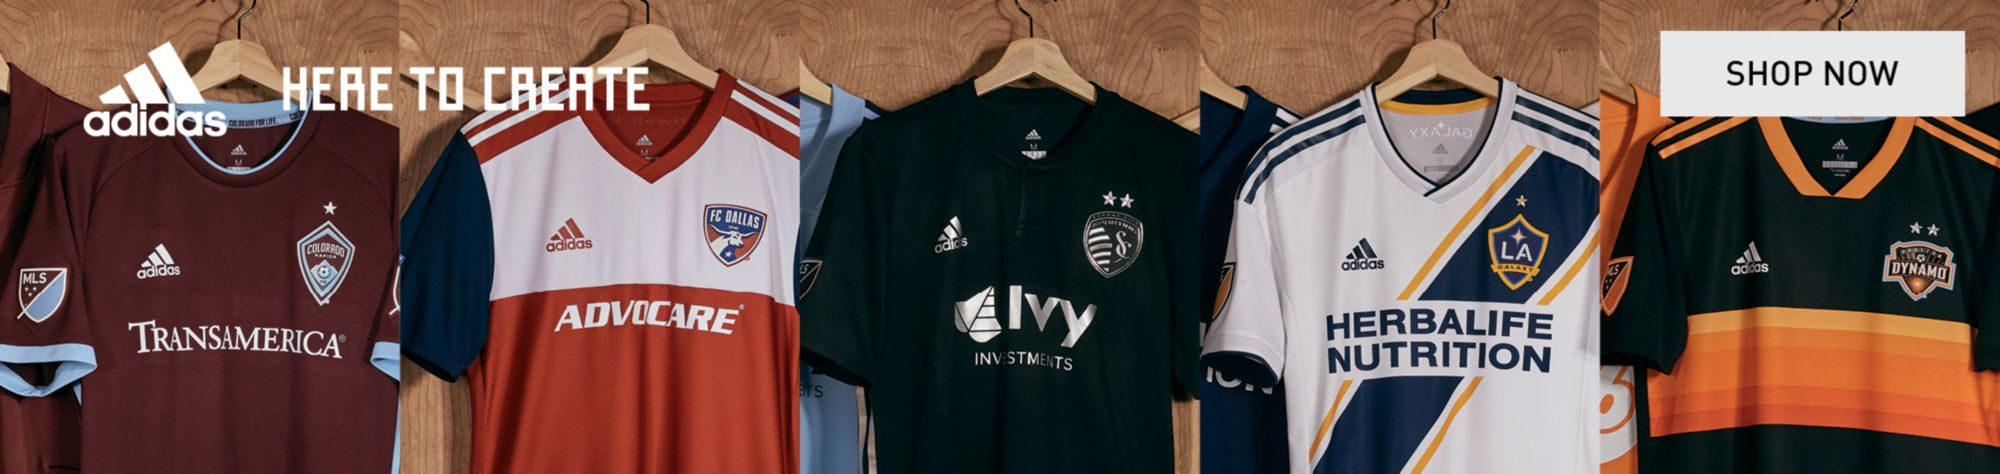 adidas - 2018 MLS Jerseys - Here to Create - Shop Now